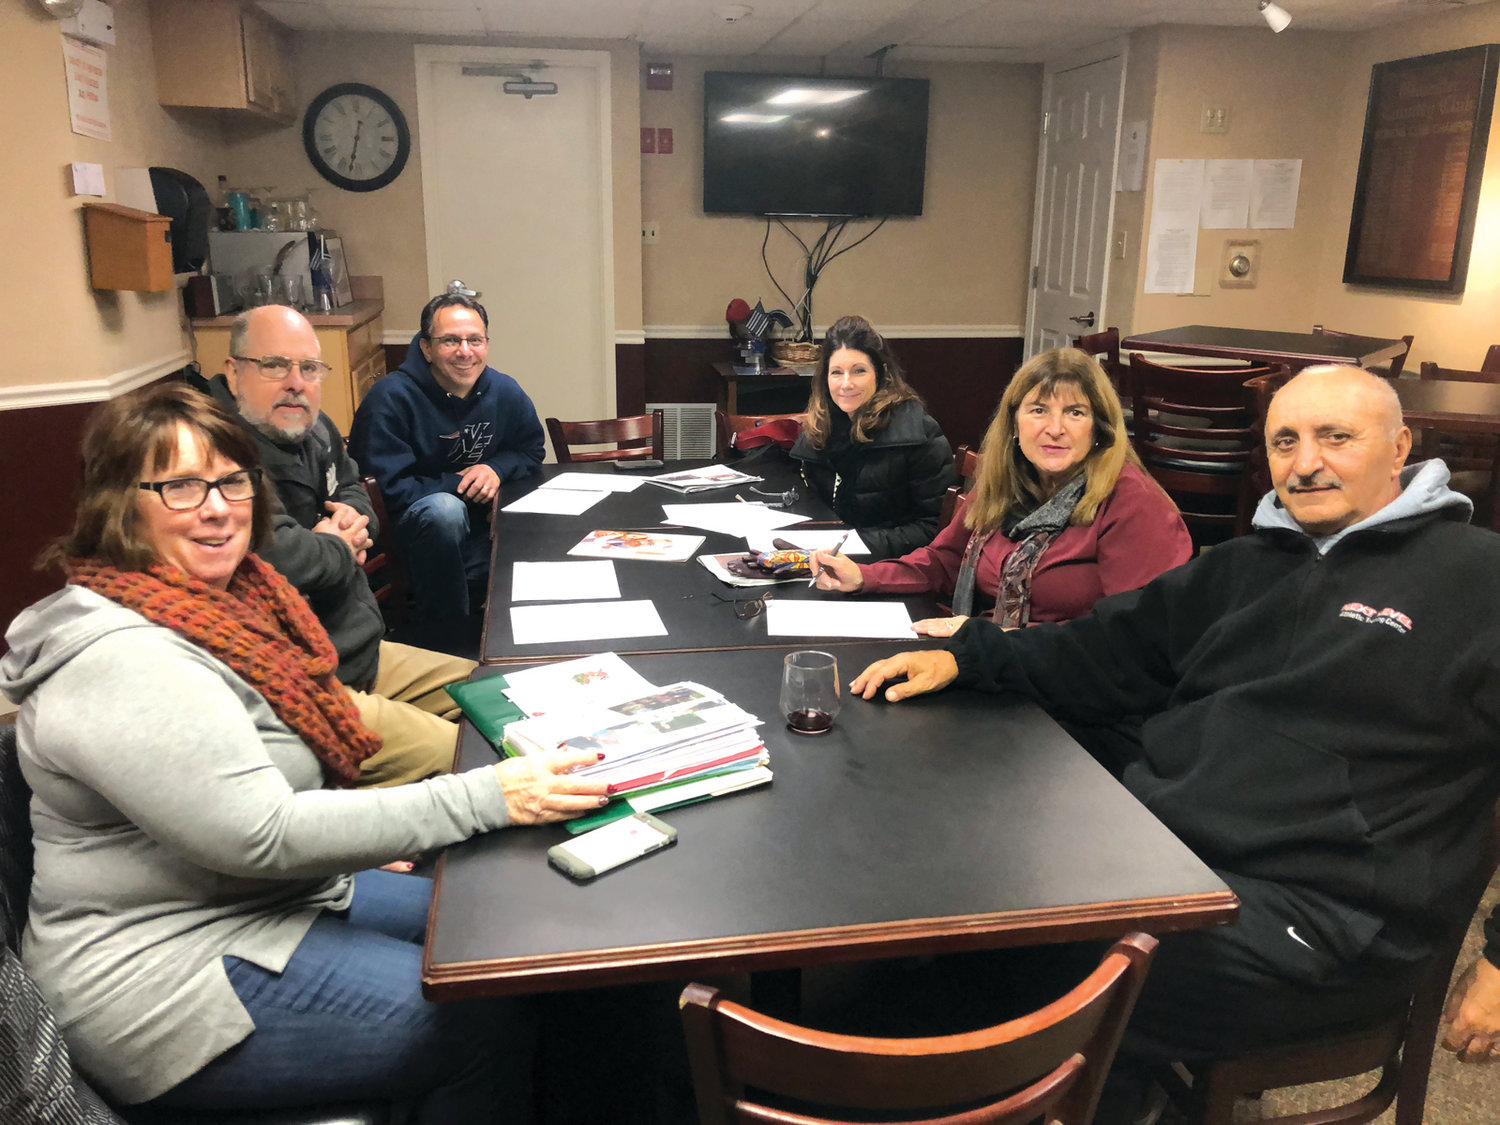 POLAR PALS: These are some of the people planning the 5th Annual New Year's Day Polar Golf Tournament that will tee off at 10 o'clock on January !, 2019 at Glocester Country Club. The group includes, from left: Linda LaFazia, David Graham, Dewey Uriati, Tracy Uriati, Judi Graham and Vin LaFazia.